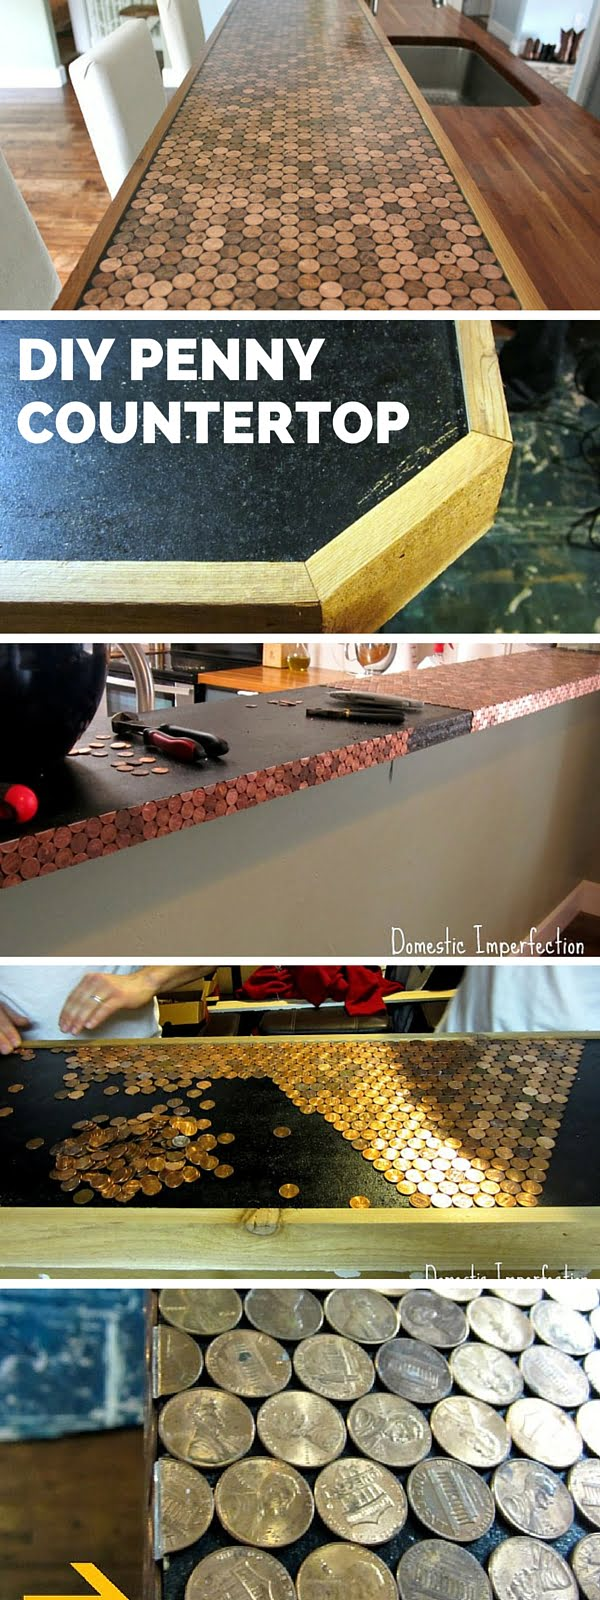 20 Easy Countertop DIY Tutorials to Revamp Your Kitchen - Check out the tutorial: DIY Penny Countertop